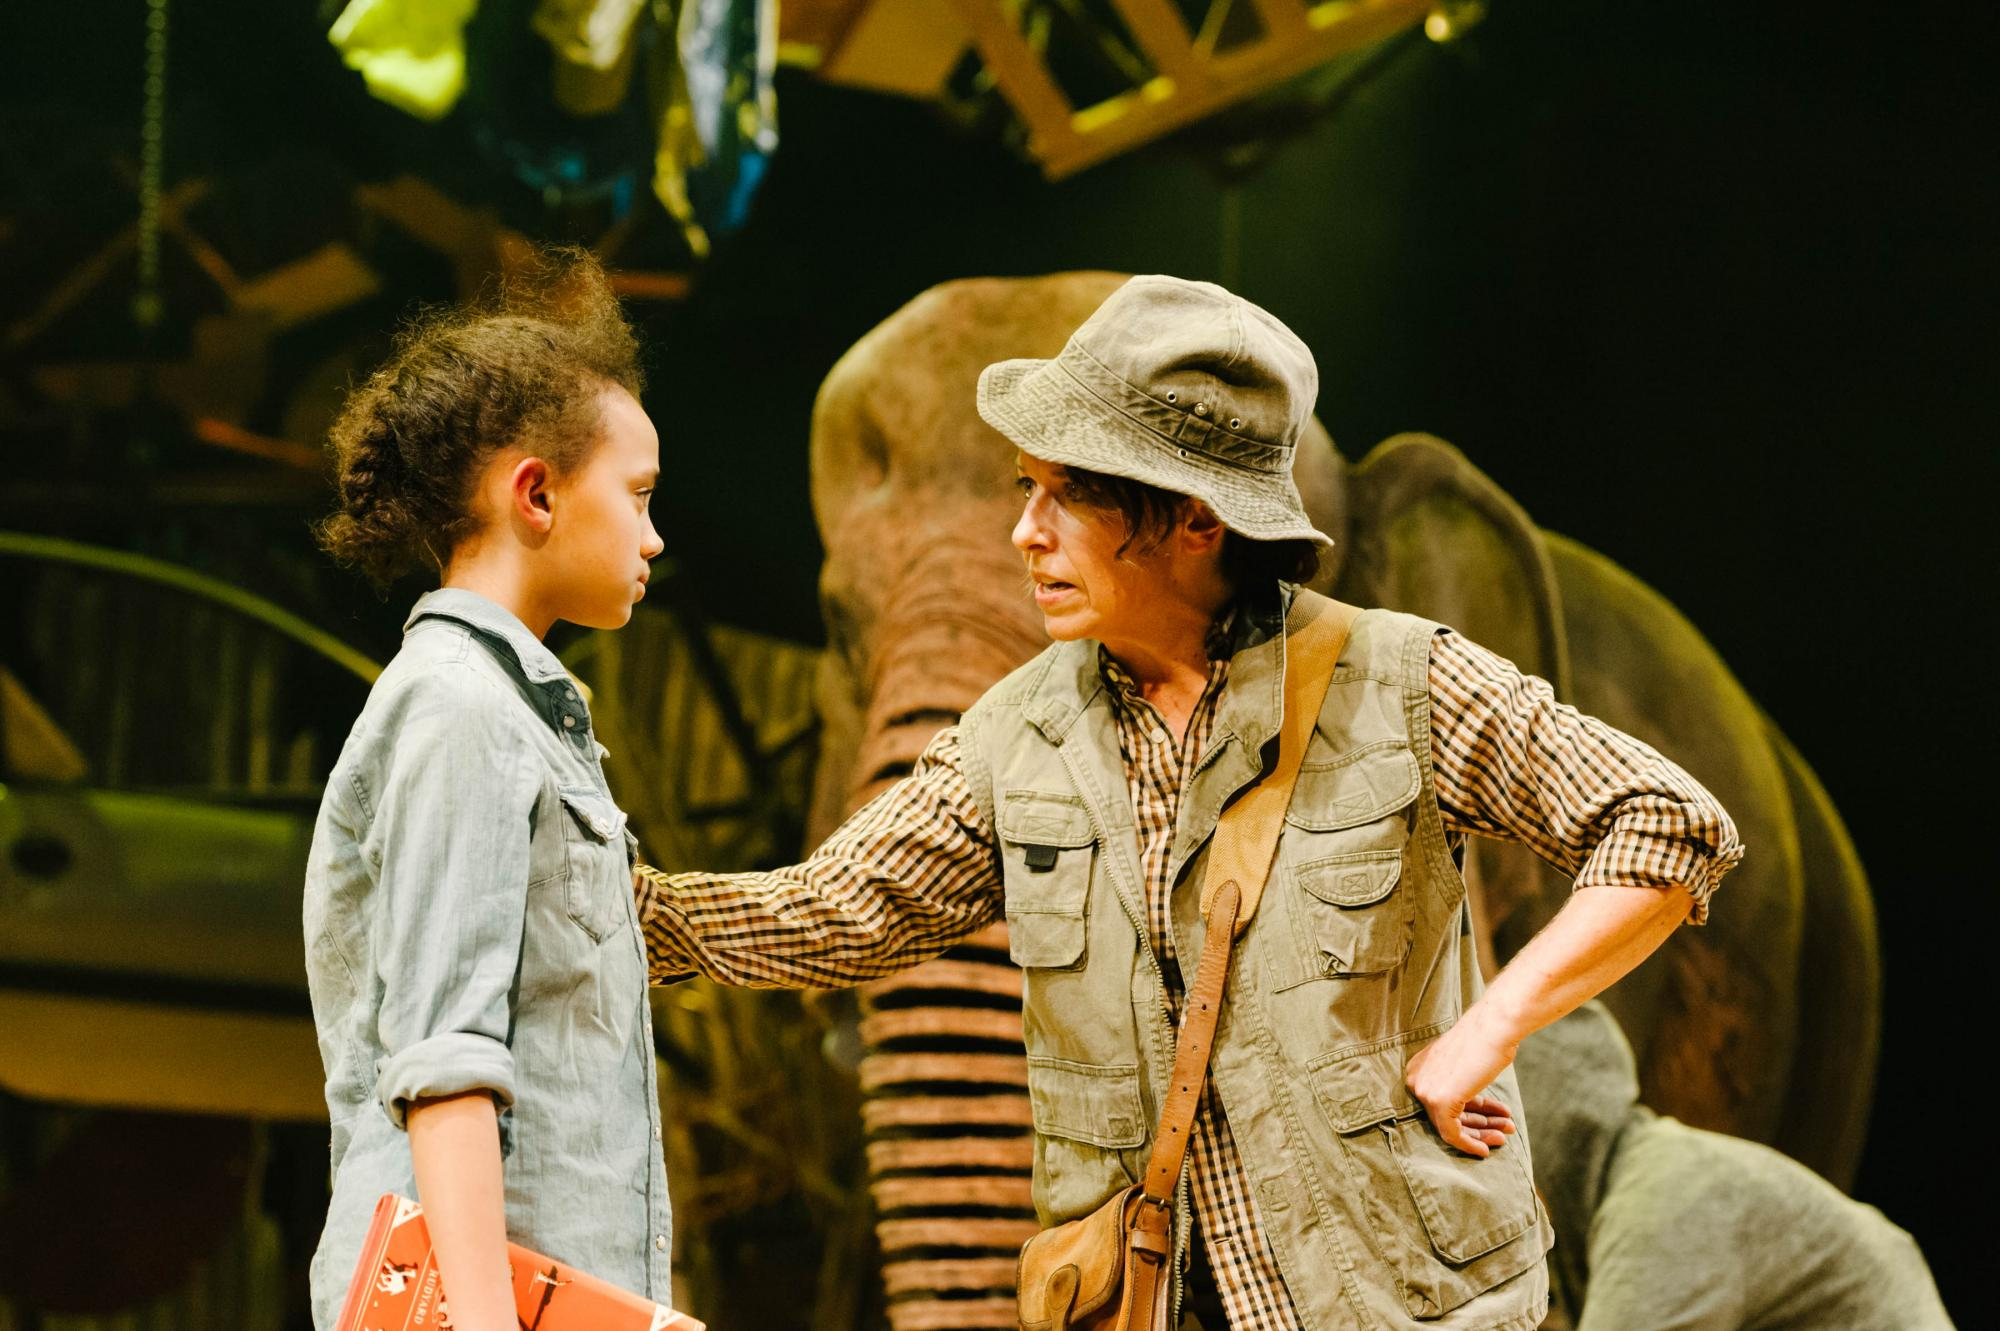 Originated by Chichester Festival Youth Theatre at Cass Sculpture Foundation, Michael Morpurgo's story is directed by Timothy Sheader and CFT's Director of LEAP Dale Rooks, with puppetry design and direction by Finn Caldwell and Toby Olié, both previous Associate Puppetry Directors on War Horse, this epic and spectacular production tells an emotional and moving story of love, loss, loyalty and of living for the moment. PHOTO ©DAN TSANTILIS 2017